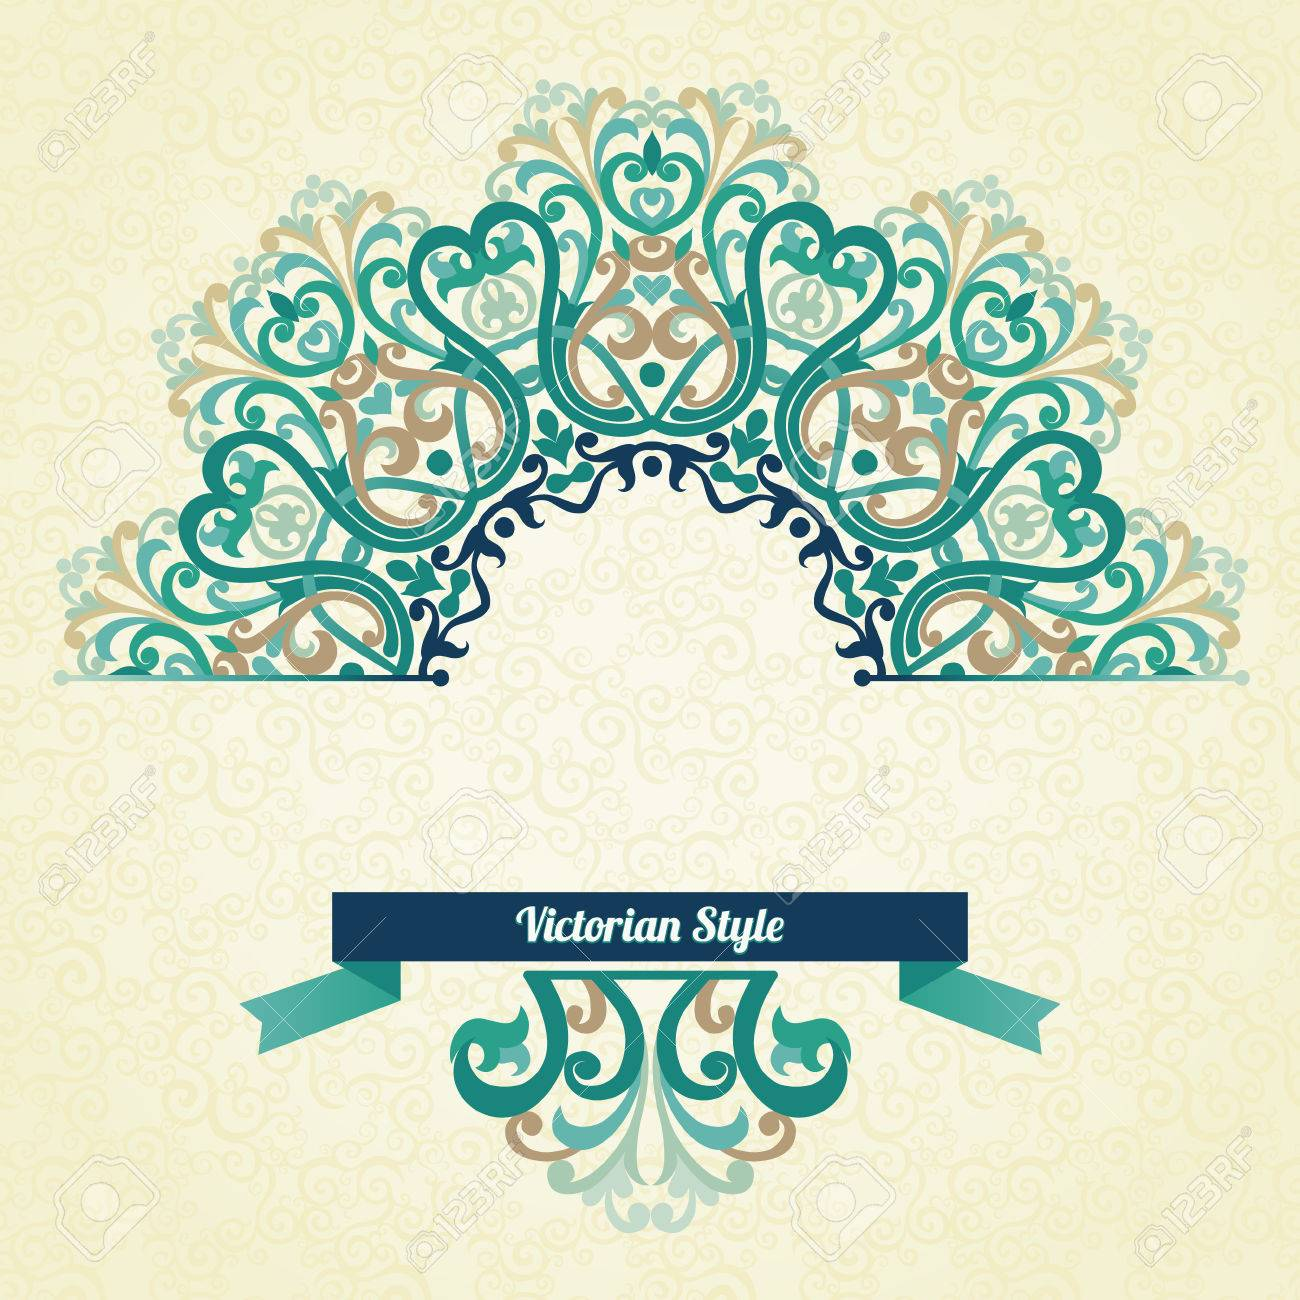 Vector ornate pattern in victorian style decorative element vector vector ornate pattern in victorian style decorative element for design and place for text ornamental lace pattern for wedding invitations and junglespirit Choice Image